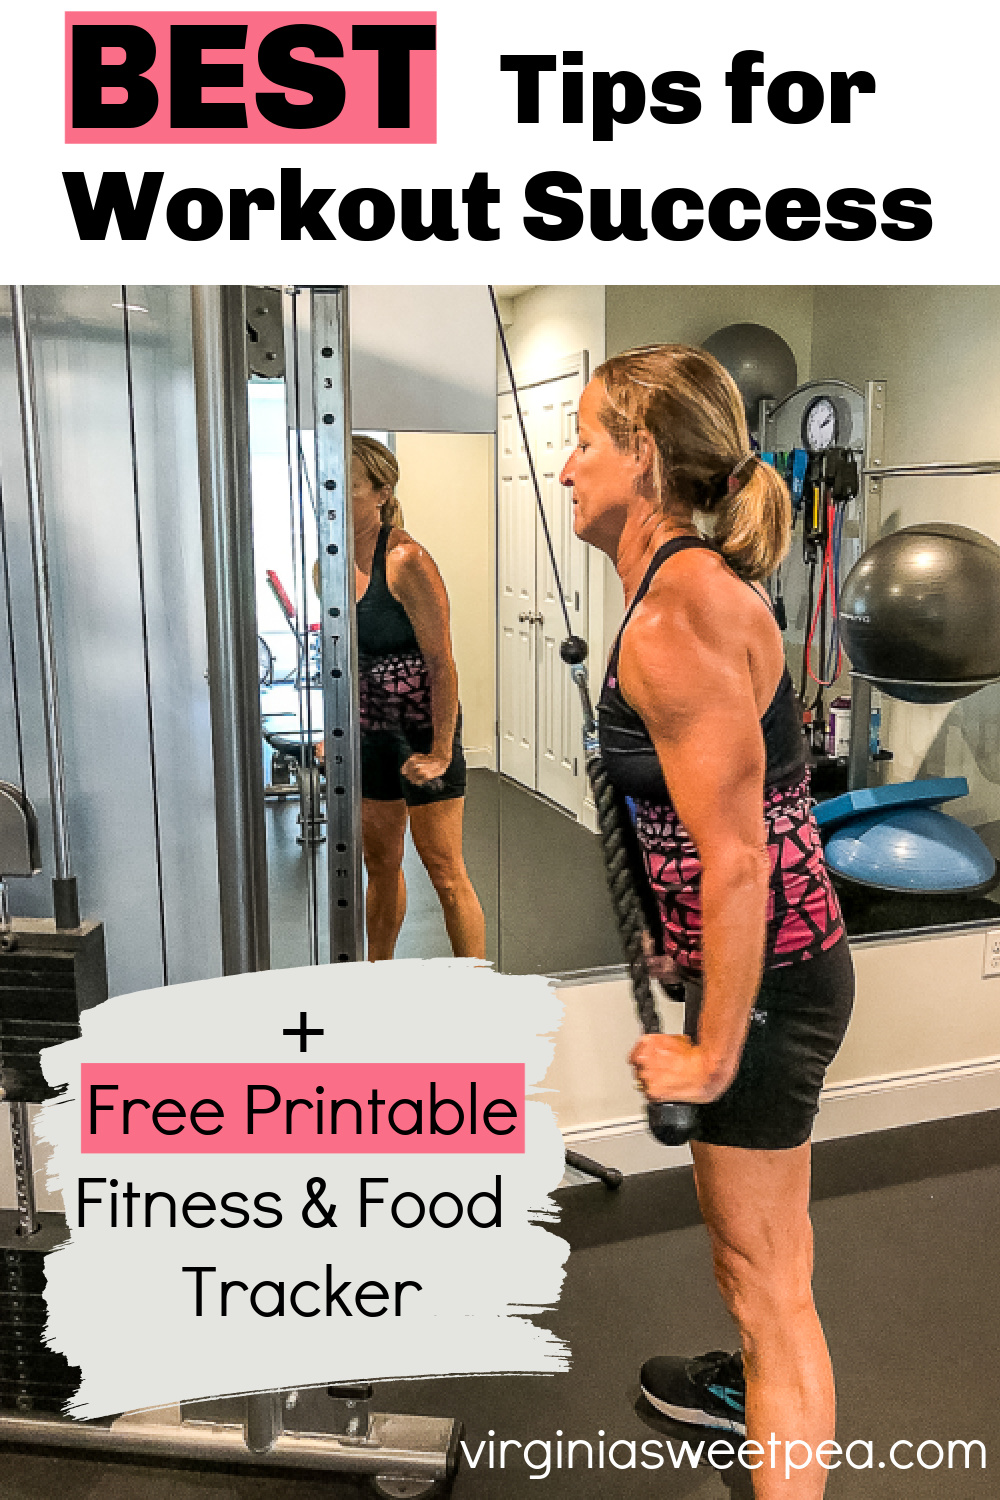 Best Tips for Workout Success + Free Printable Fitness and Food Tracker - Get 10 best tips for workout success and a free printable fitness and food tracker that includes pages to track workouts, meals, calories, water, and weight.  #printablefitnesstracker #printablefitnesslog #printablefoodlog via @spaula